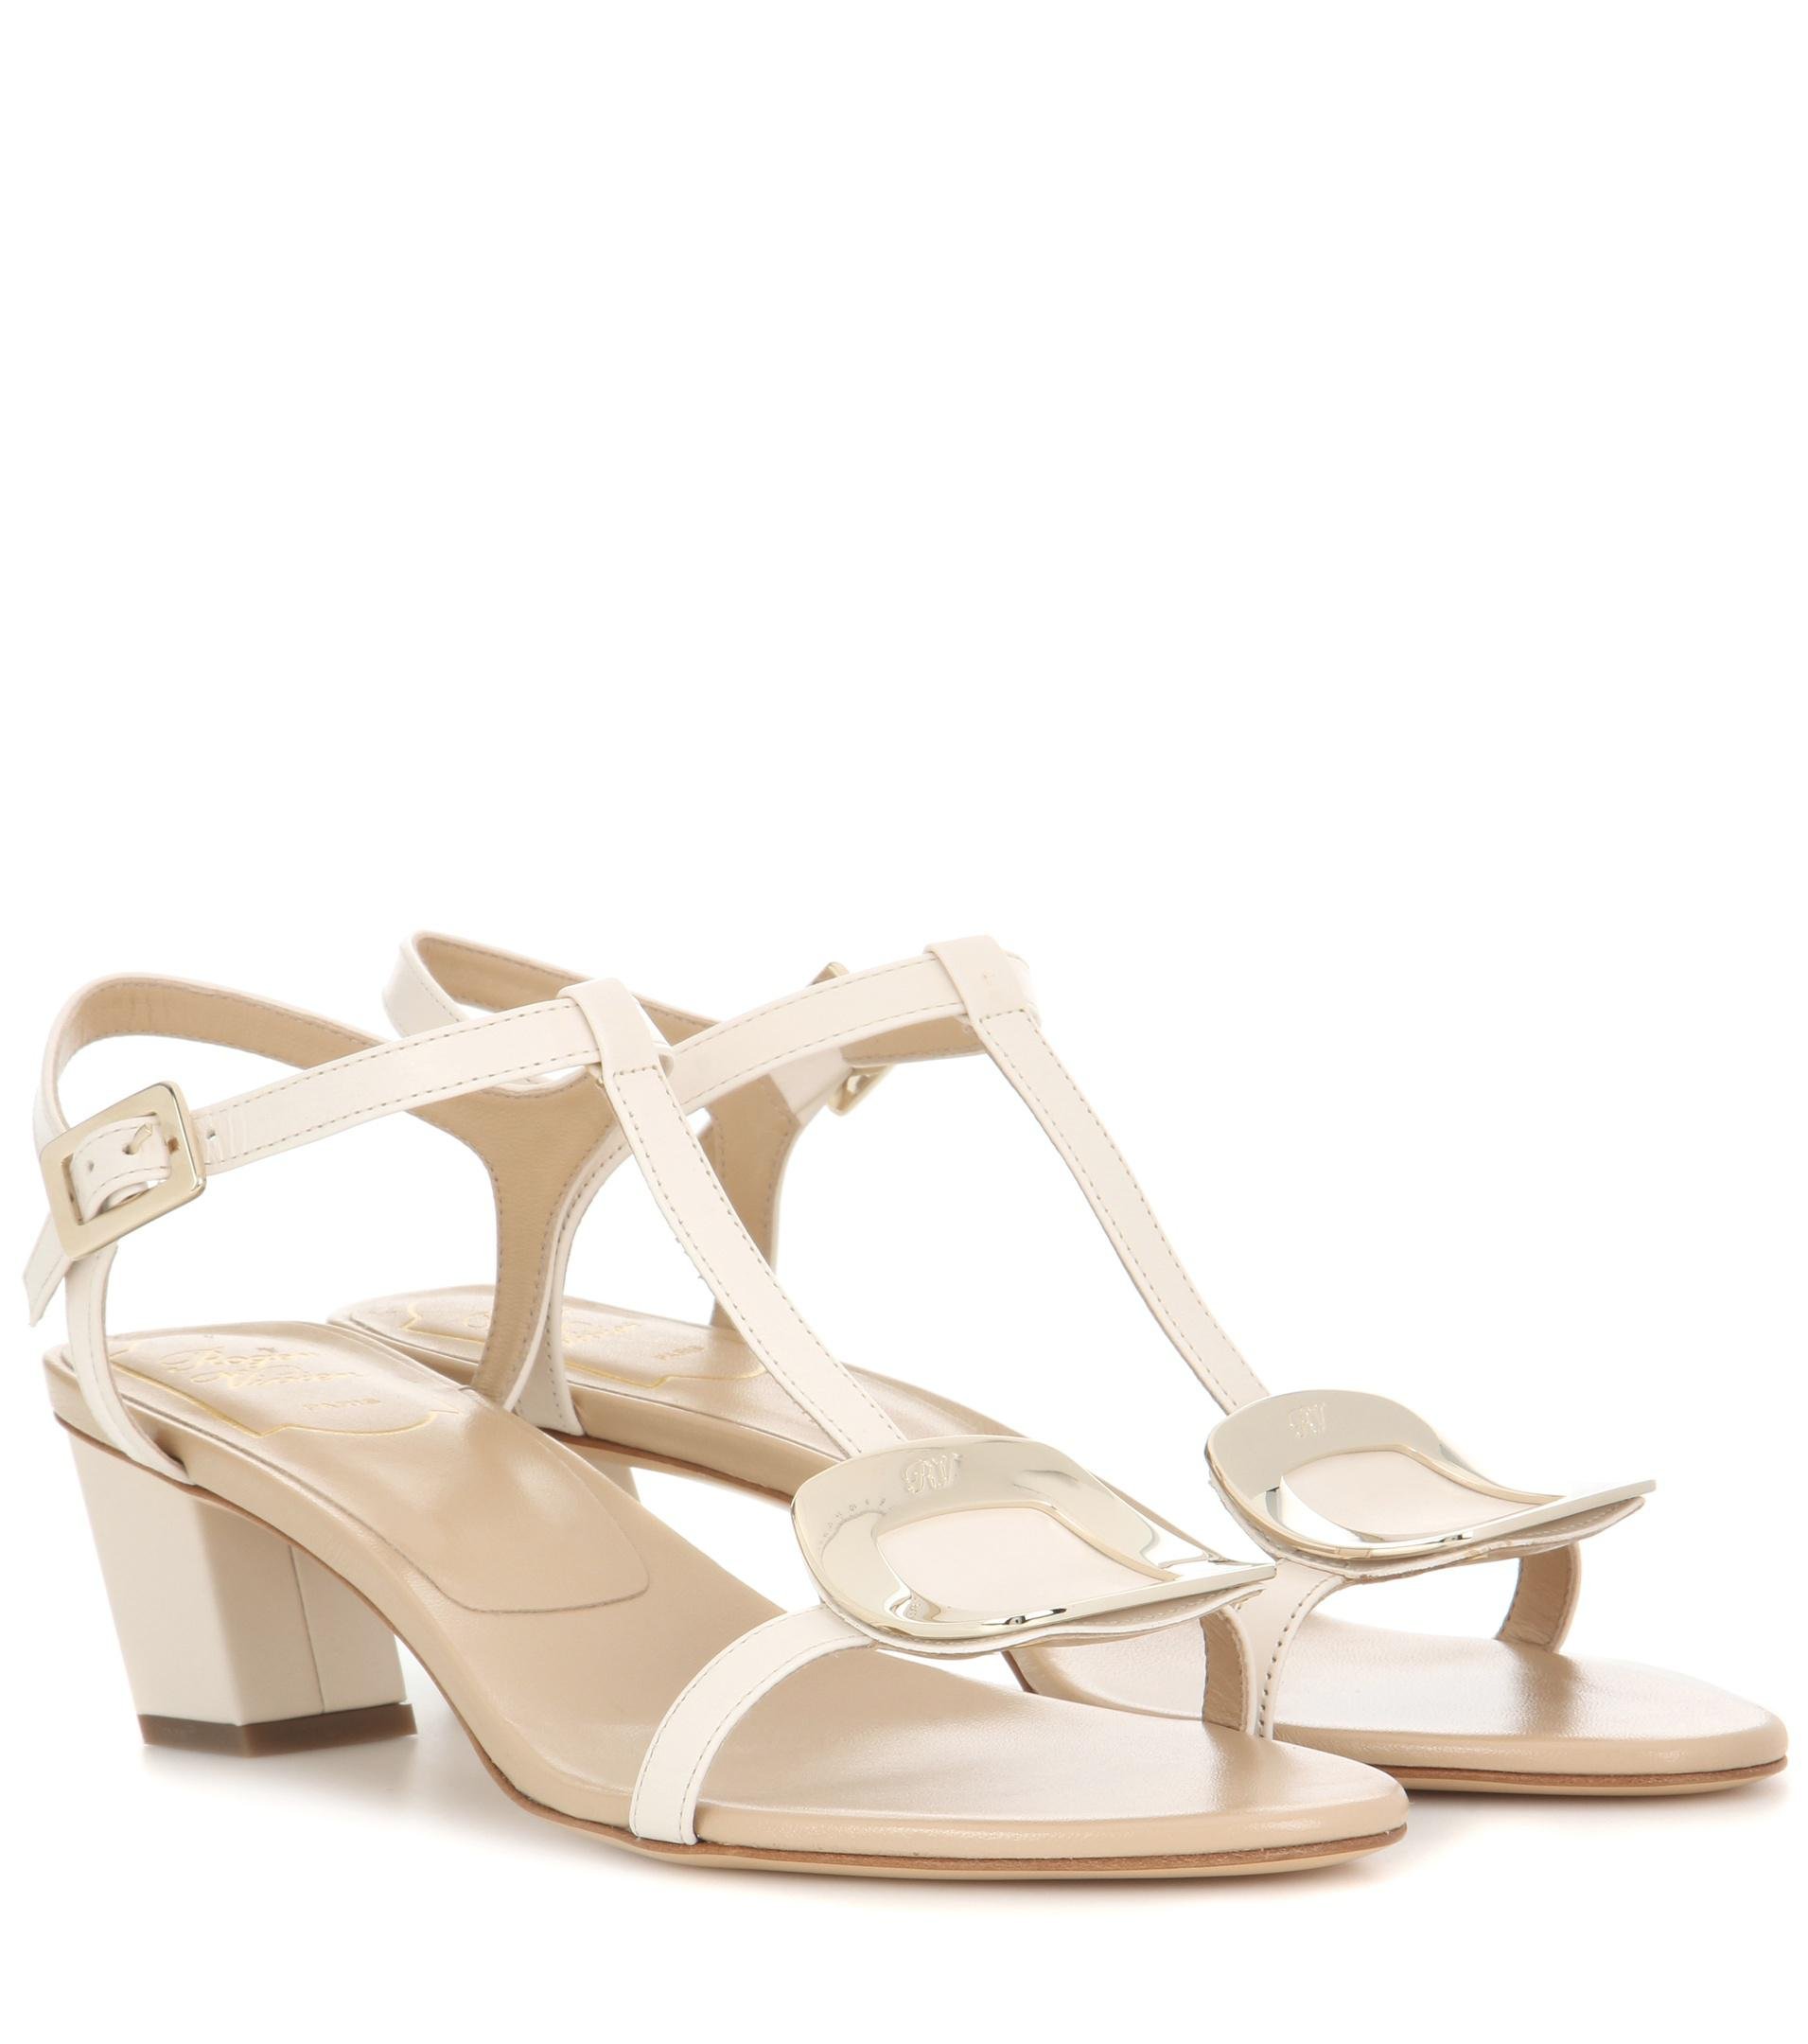 23f2fb72a2aa Lyst - Roger Vivier Chips Leather Sandals in White